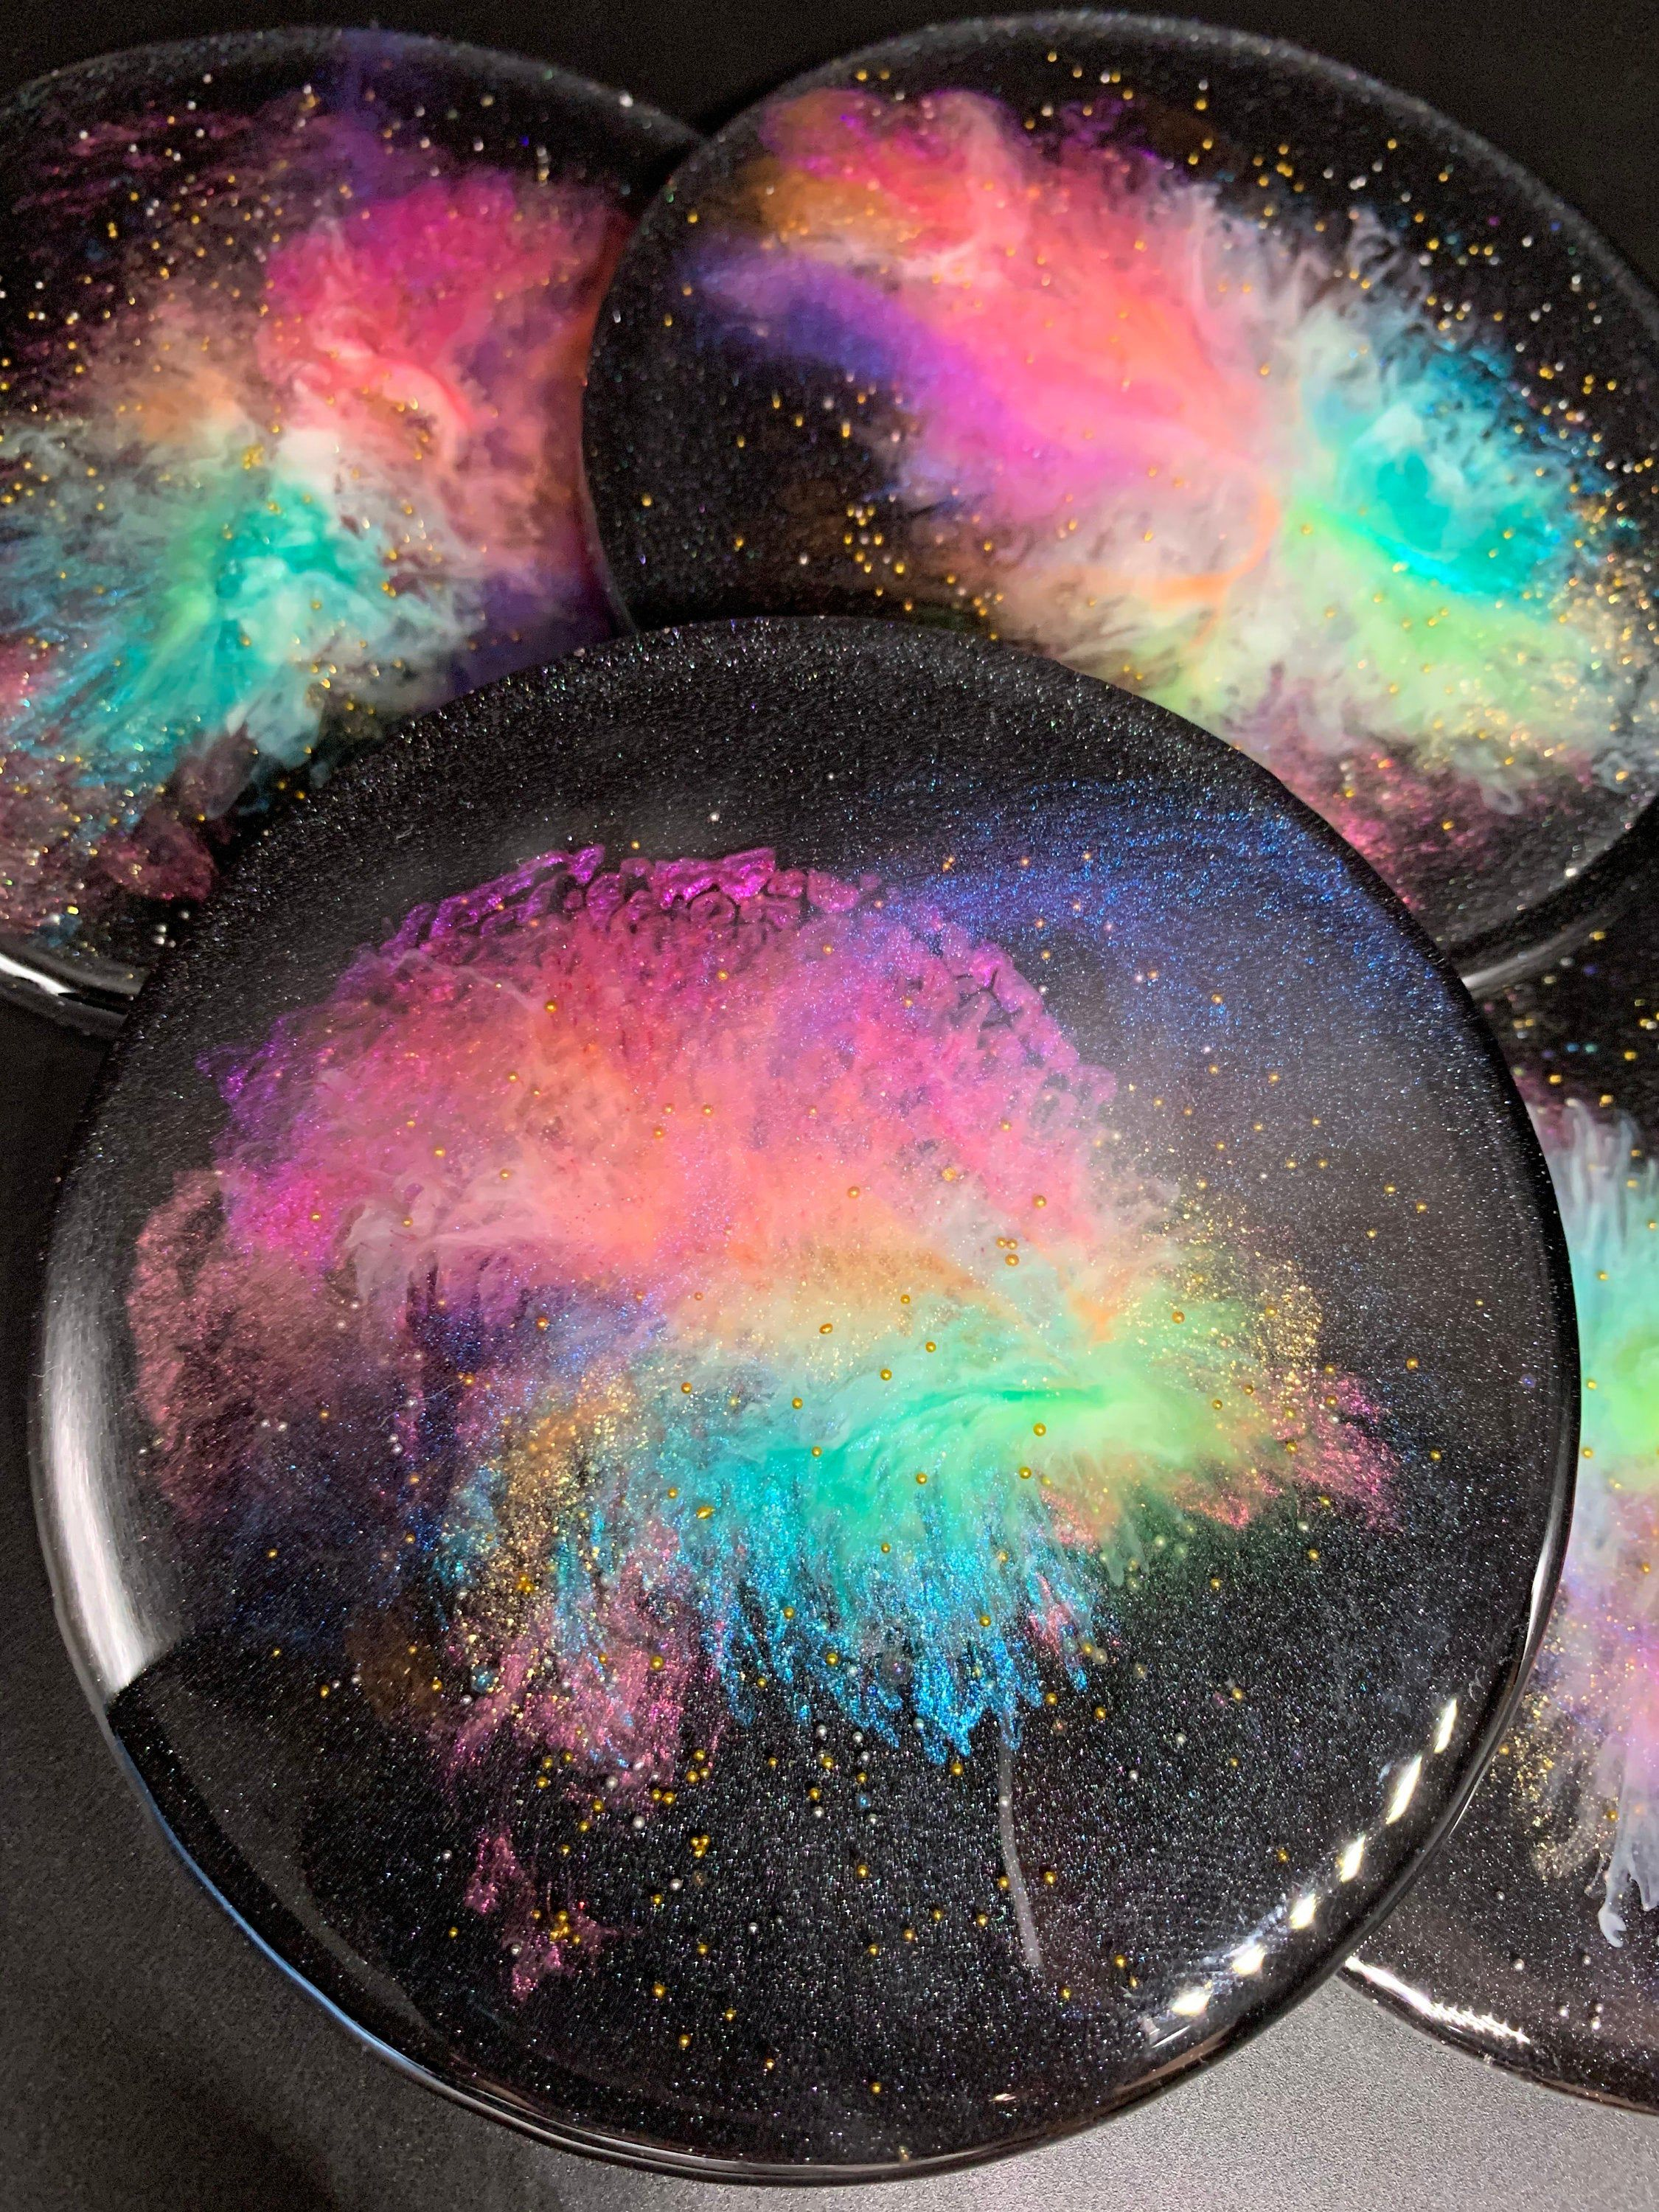 Photo of Galaxy inspired 3 dimensional Art resin coasters, set of 4